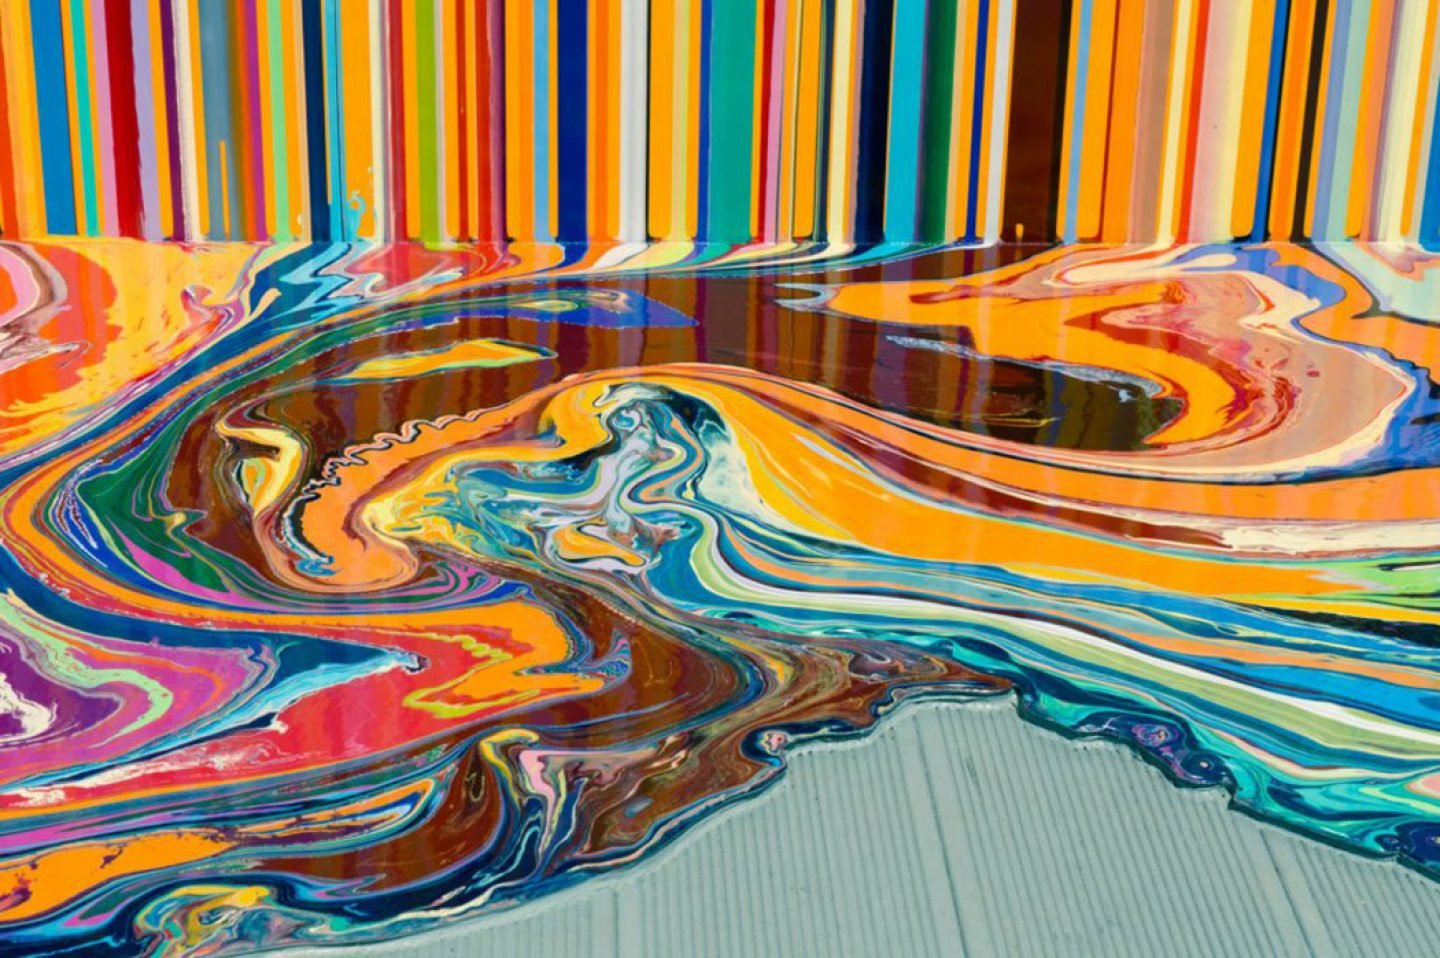 iGNANT_Art_Ian_Davenport_Puddle_Paintings_6